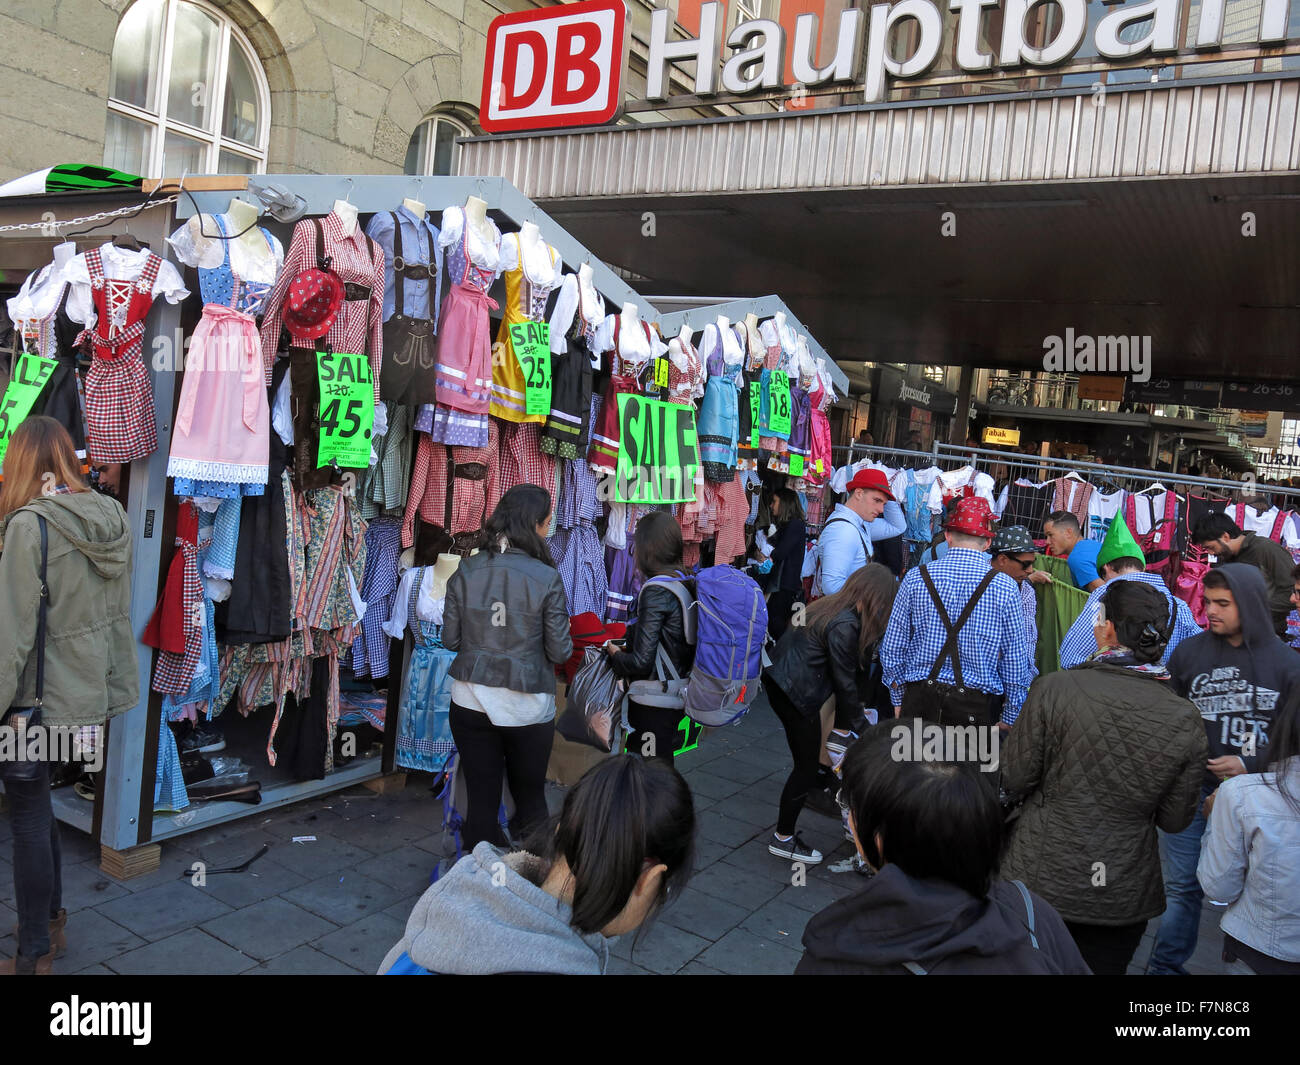 sale,prices,for,sale,reduced,Octoberfest,beer,bier,festival,railway,station,gear,Hbf,central,stall,market,price,prices,Bavarian,lederhosen,hat,tourist,tourists,Dirndl,leather,Bundhosen,Kniebundhosen,traditional,clothing,clothes,Alpine,dress,skirt,For Sale,GoTonySmith,Munich,Oktoberfest,in,Germany,Volksfest,beer,festival,and,travelling,funfair,Bavaria,event,Wiesn,fairgrounds,Octoberfest,October,Autumn,Theresienwiese,field,or,meadow,of,Therese,centre,beer,center,bier,roast,pork,chicken,building,buildings,Brezen,pretzels,Knödel,potato,bread,dumplings,Käsespätzle,Reiberdatschi,pancake,Sauerkraut,or,Rotkohl,Blaukraut,ale,Dirndl,Lederhosen,Sennerhut,tent,Buy Pictures of,Buy Images Of,Unity Day,Oktoberfest beer,Beer festival